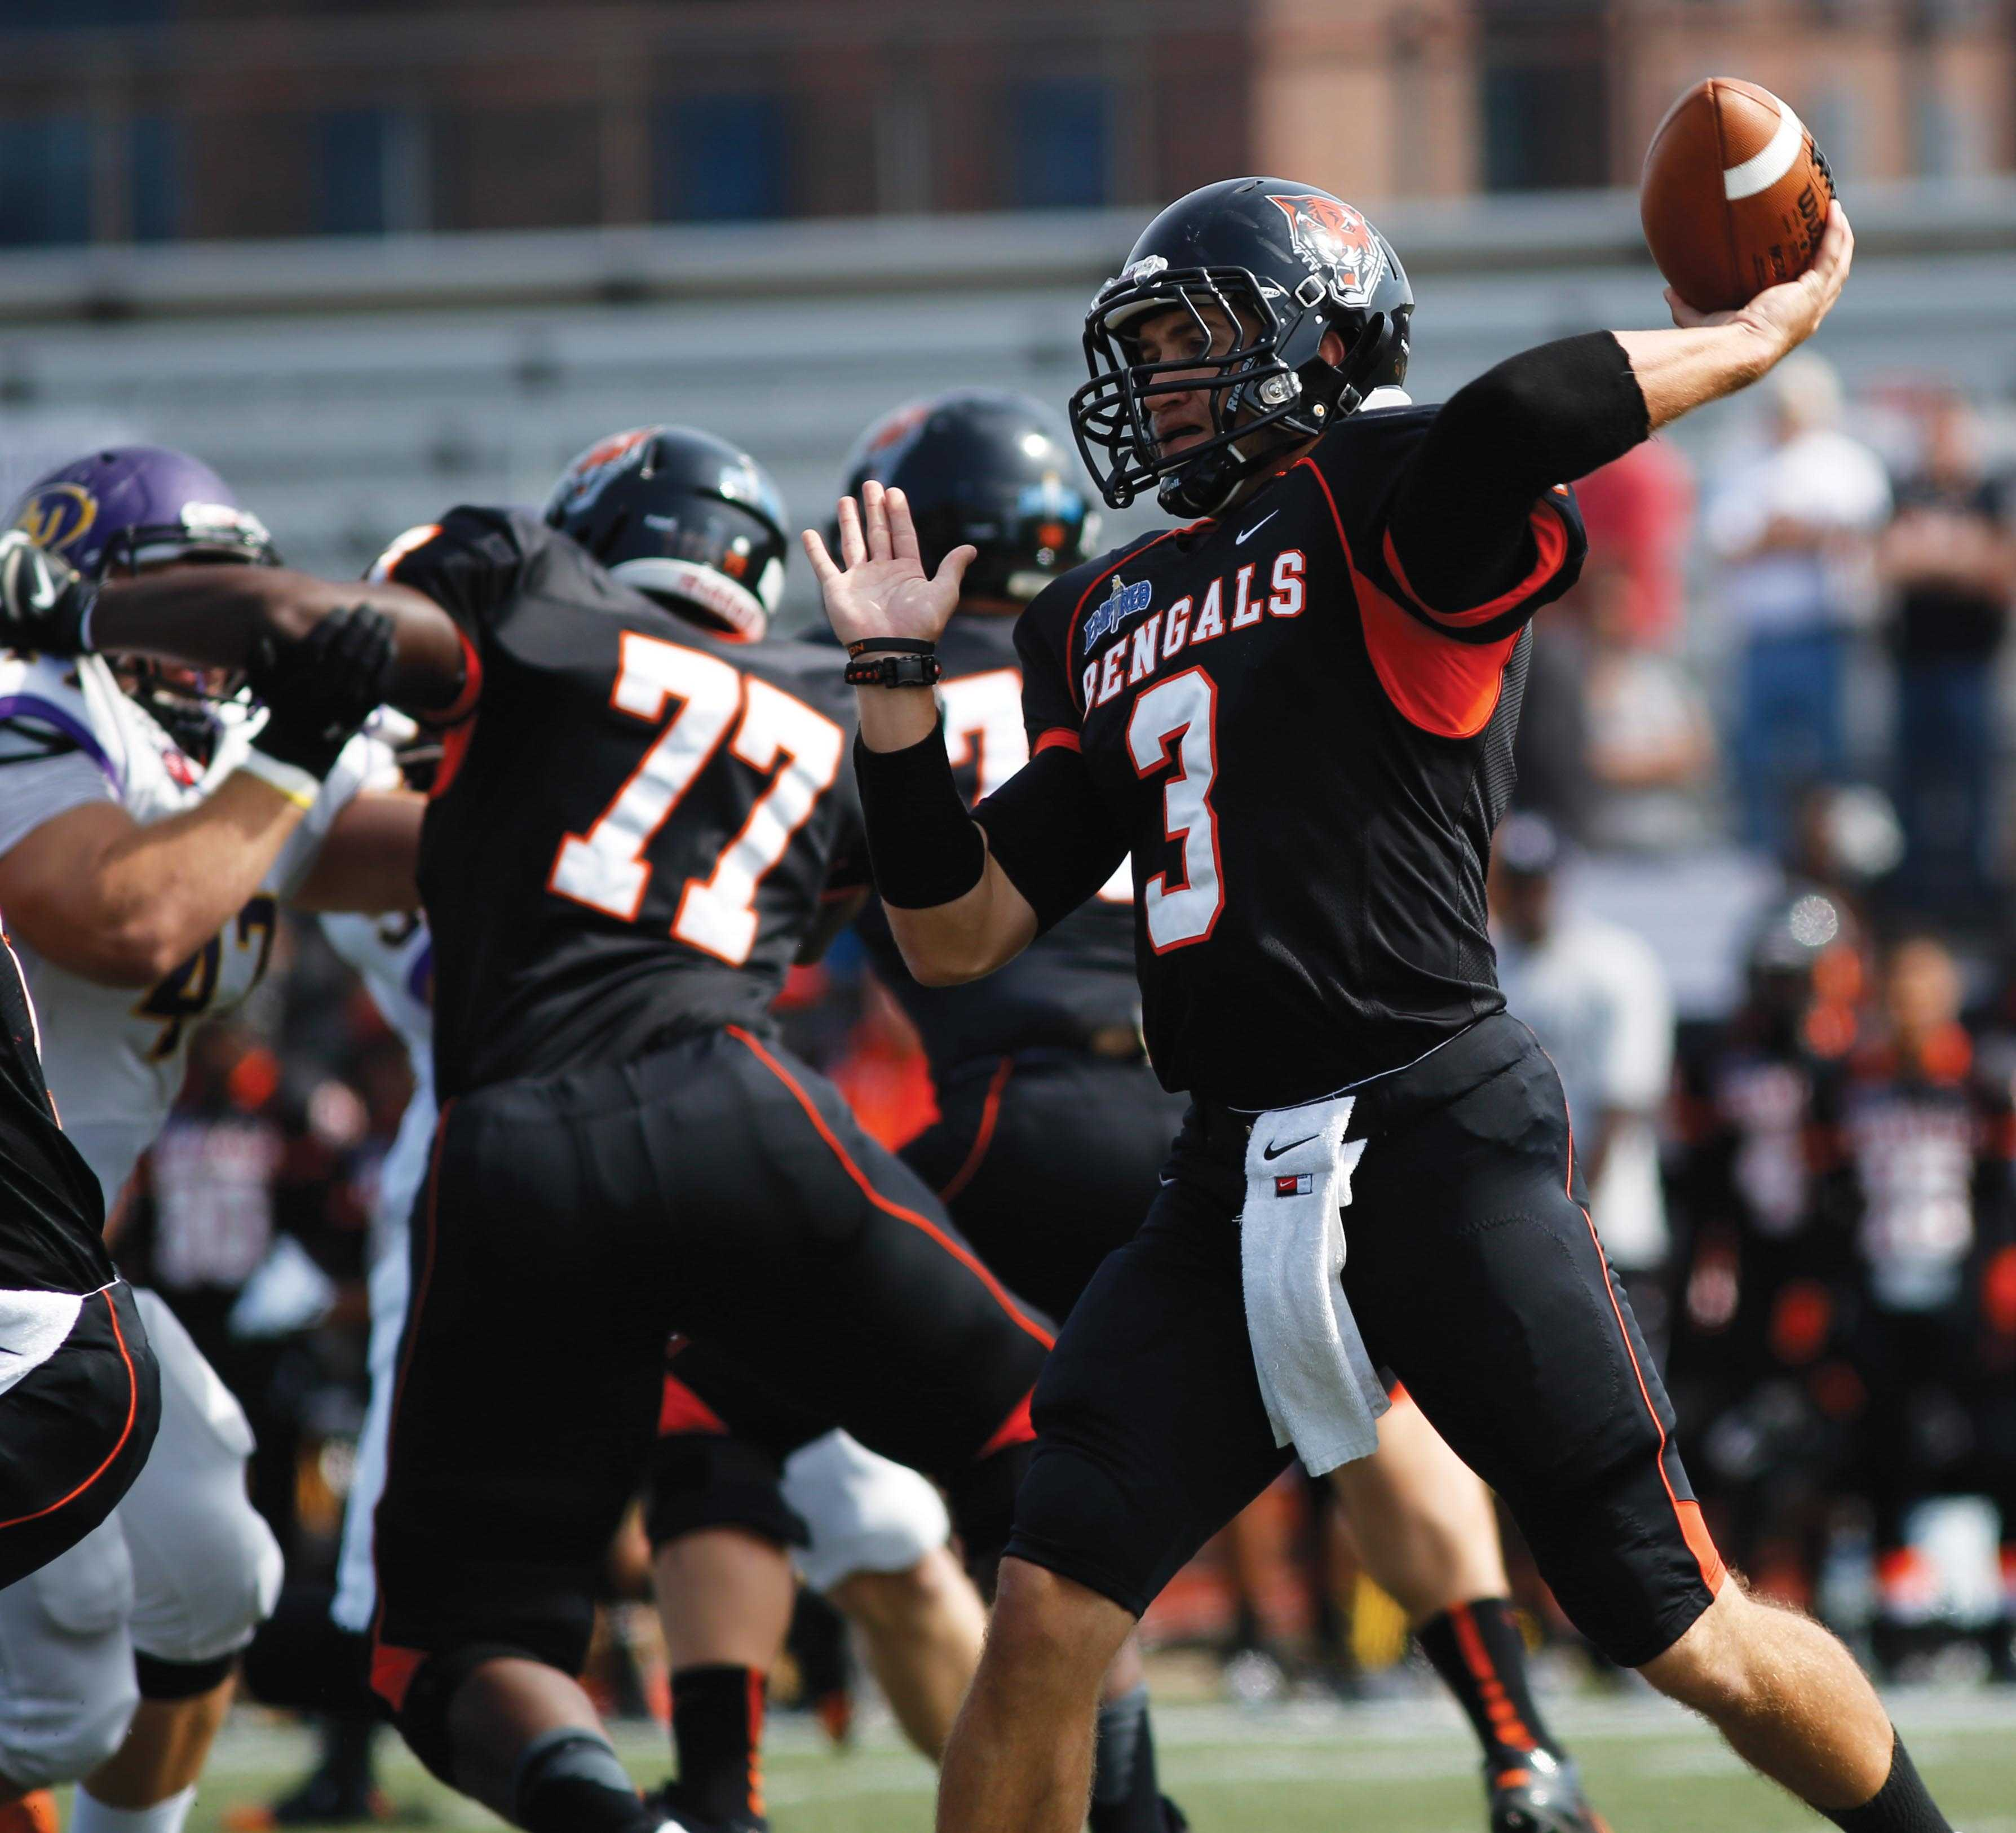 Junior quarterback Kyle Hoppy returns after leading the Bengals to an ECAC Championship in 2014.